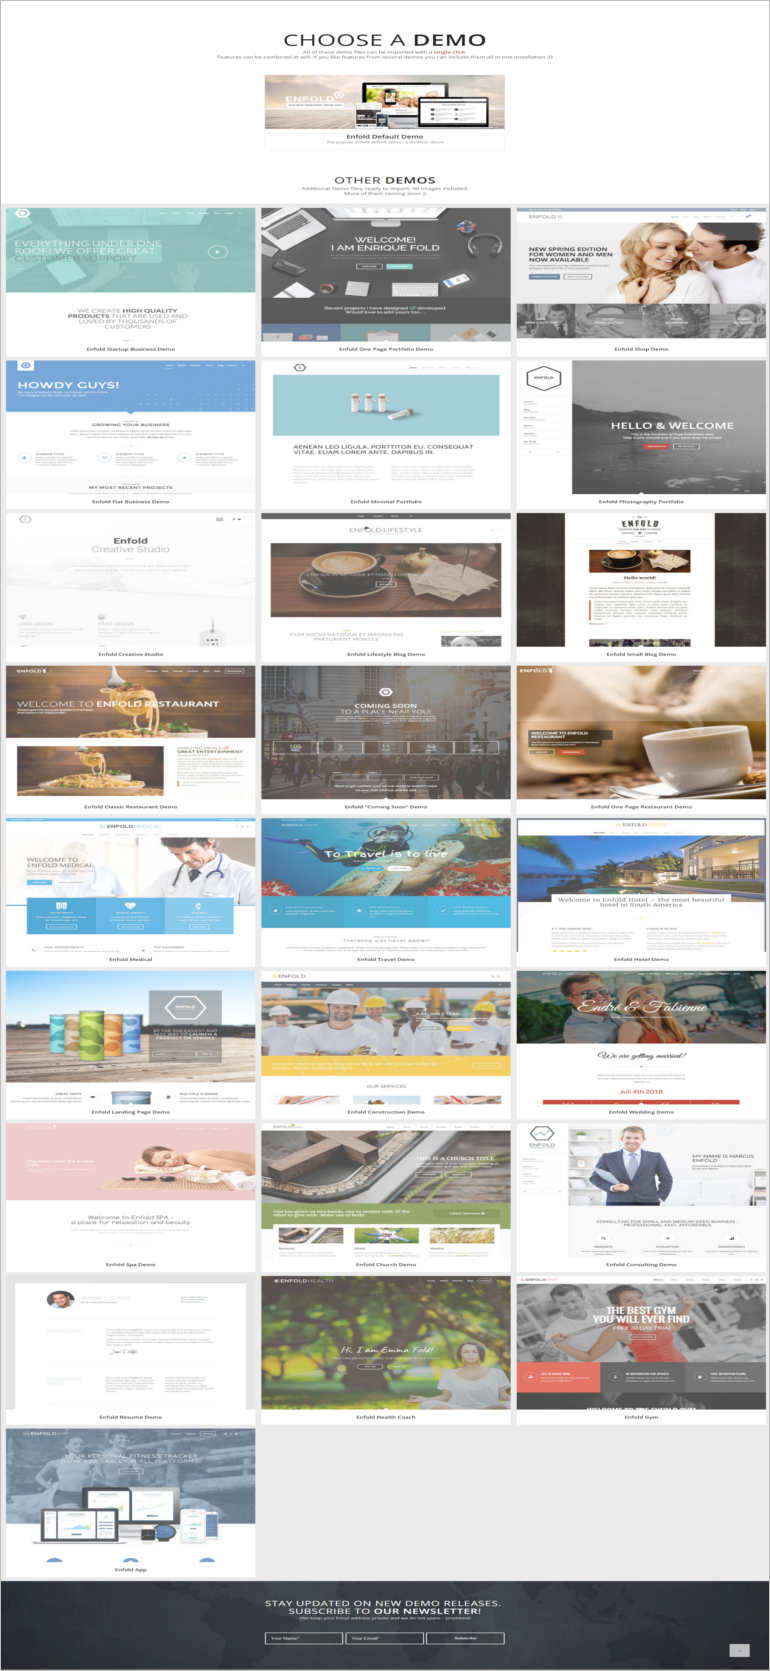 wide-range-of-high-quality-themes